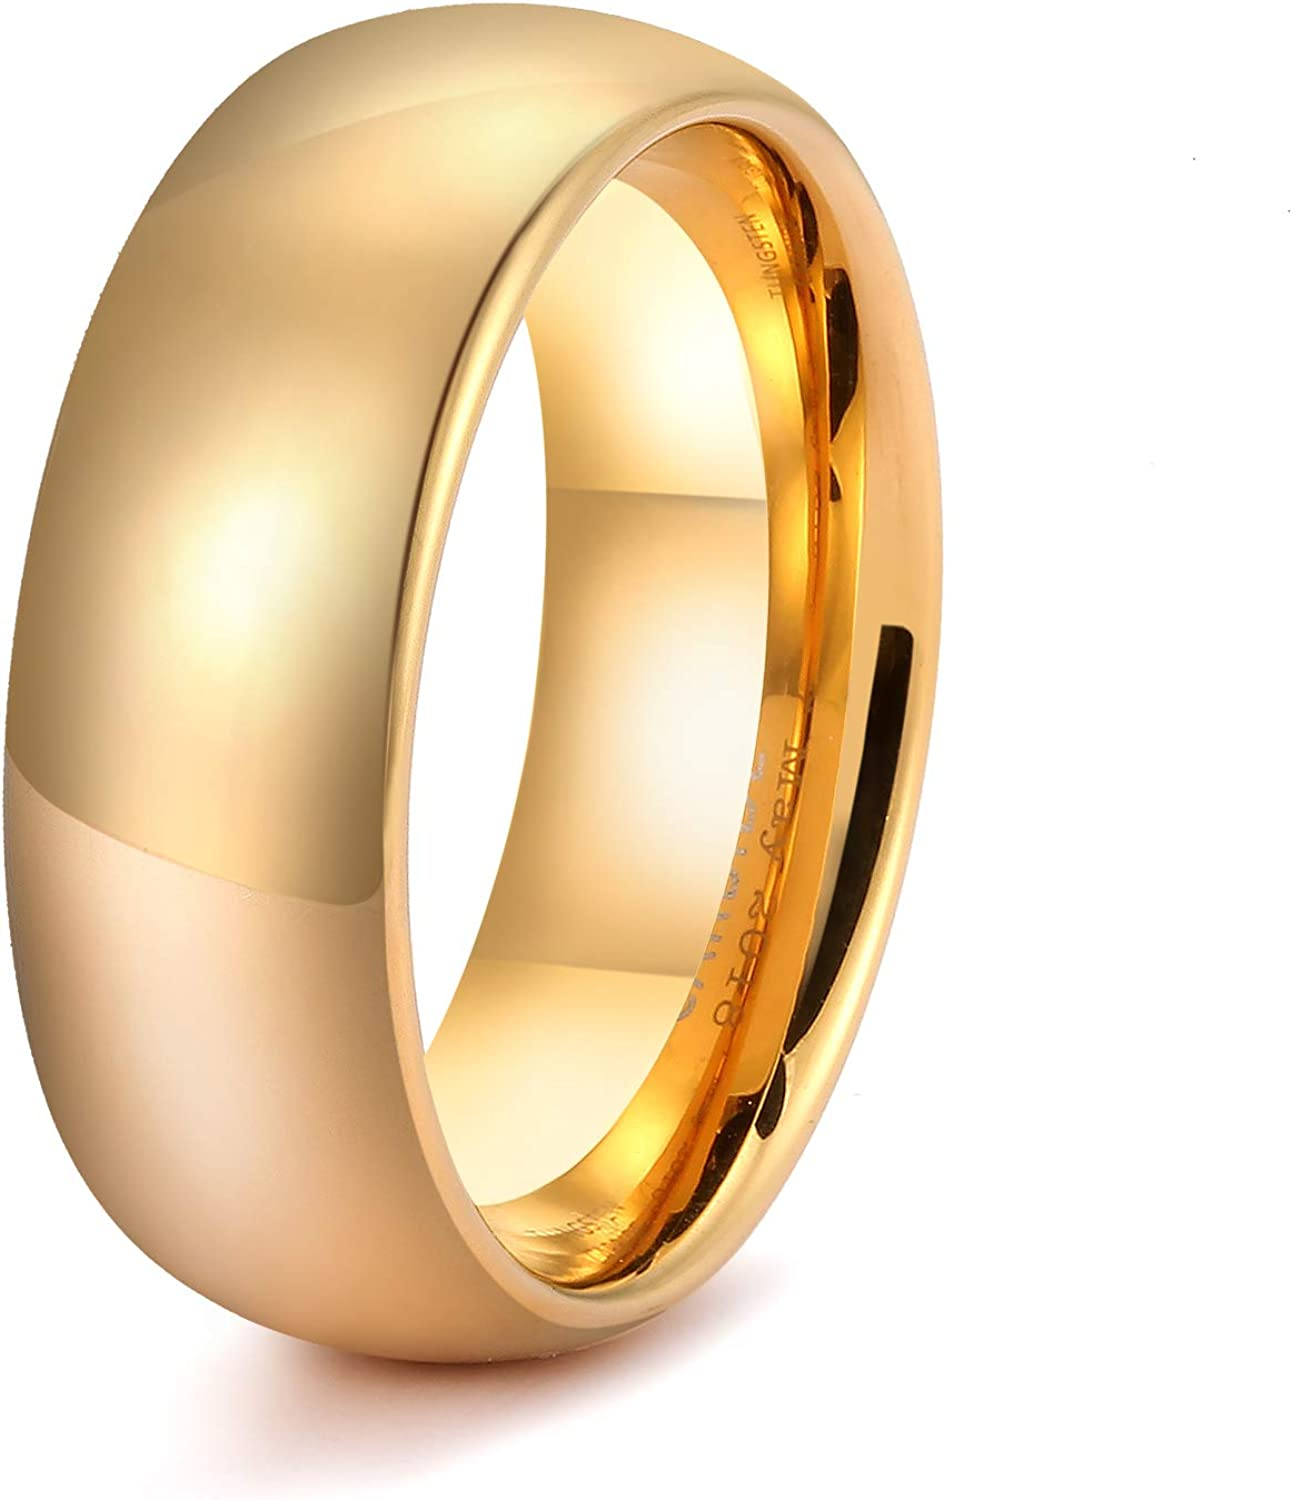 LerchPhi 6mm 8mm Gold Couple Promise Bands Engagem Popular Ranking integrated 1st place Rings Wedding